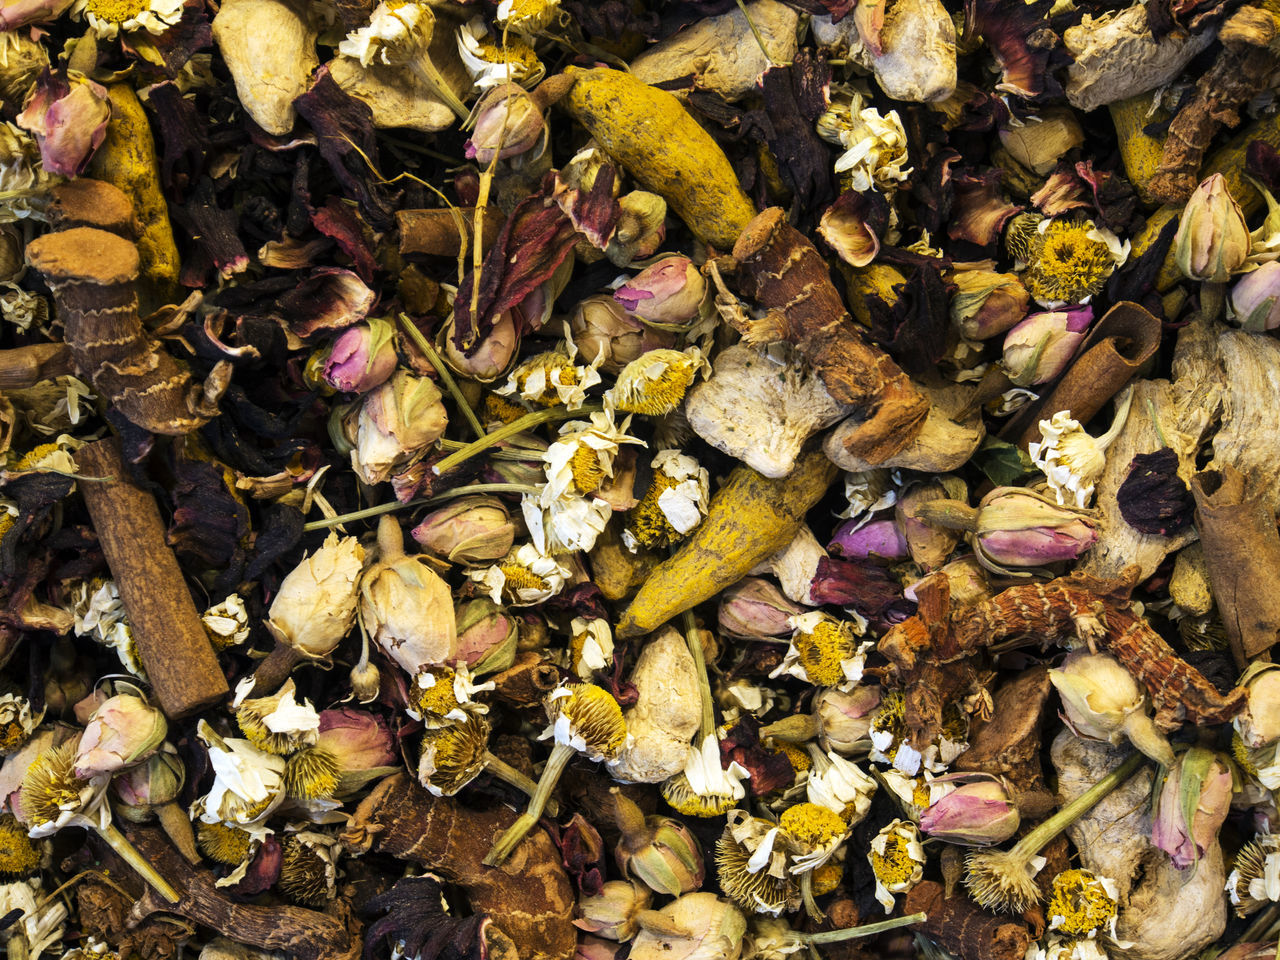 Herbal Tea in the Spice Bazaar Abundance Autumn Bazaar Beauty In Nature Change Day Dry Fragility Freshness Full Frame Herbal Leaf Leaves Multi Colored Natural Condition Nature No People Spice Tea Tranquility Yellow